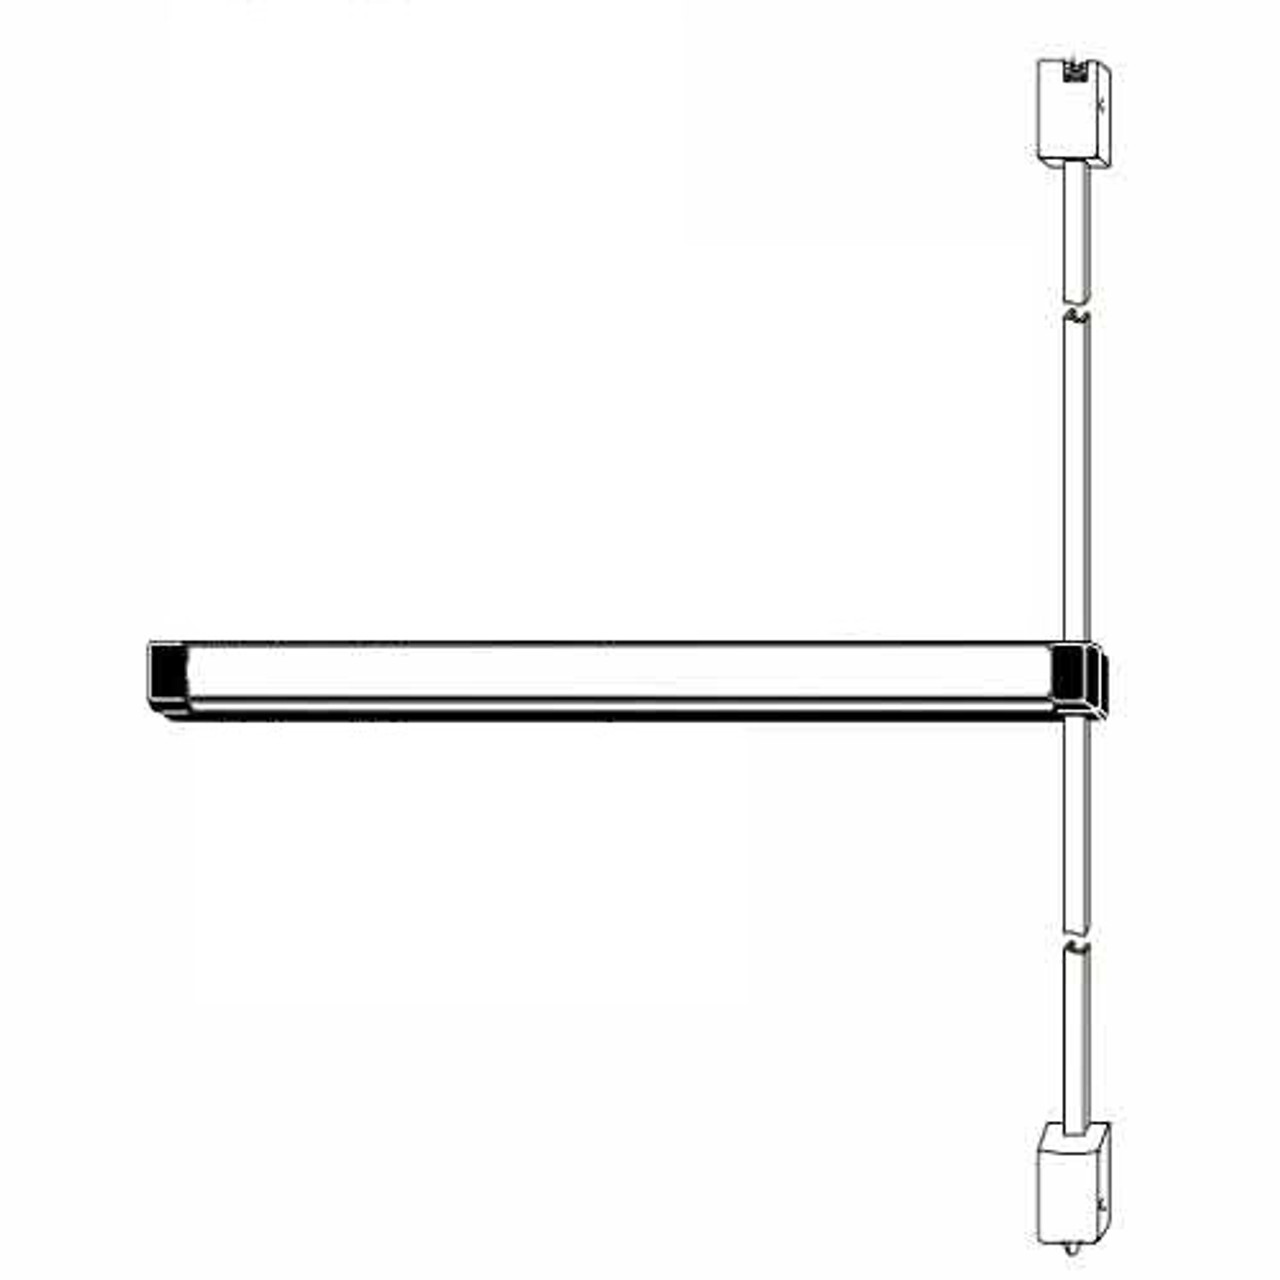 Adams Rite Surface Vertical Rod Exit Device